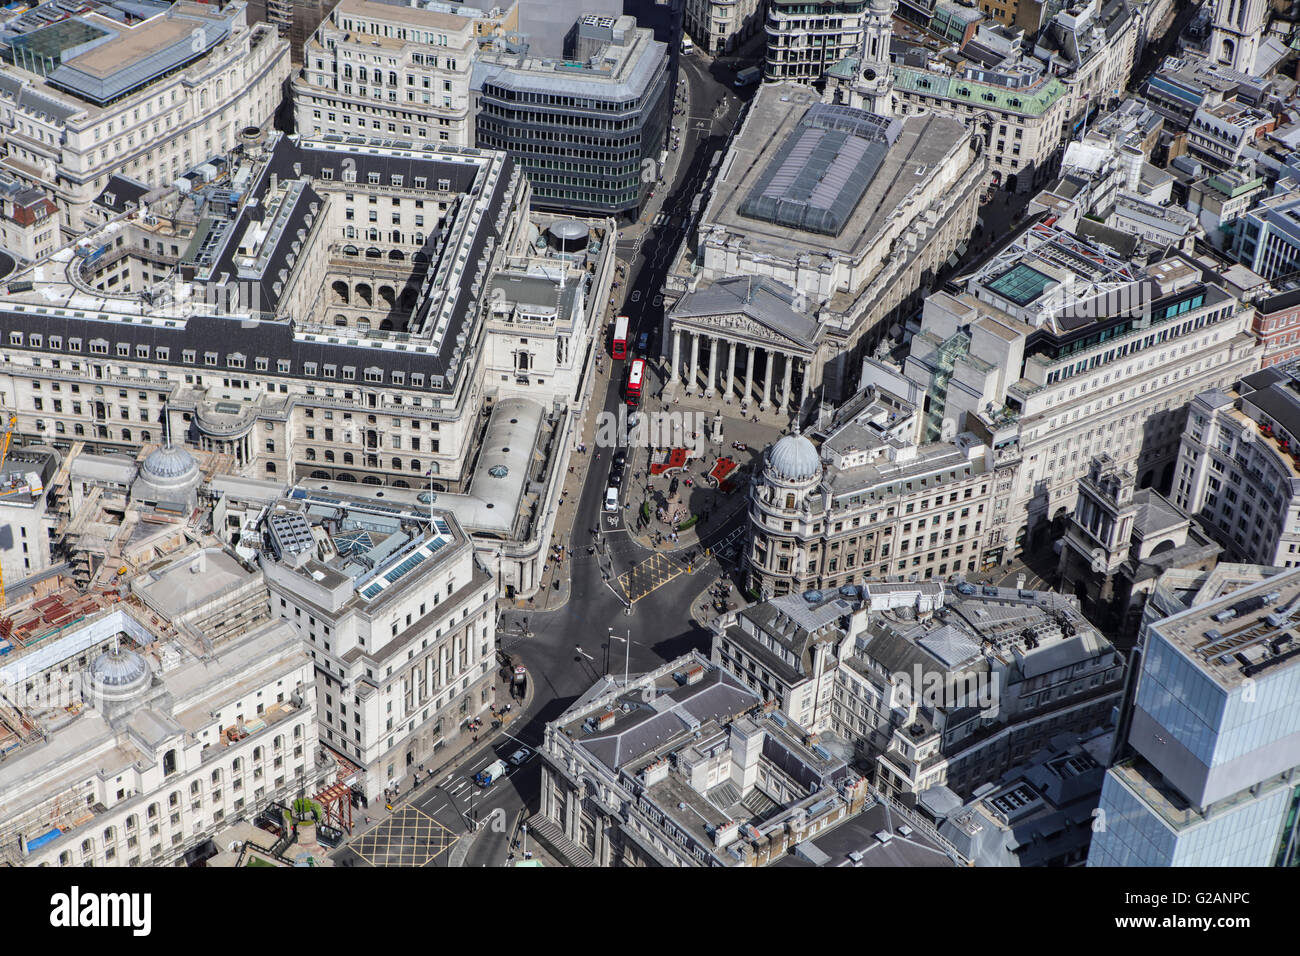 An aerial view of the immediate vicinity of Bank Underground station in London - Stock Image